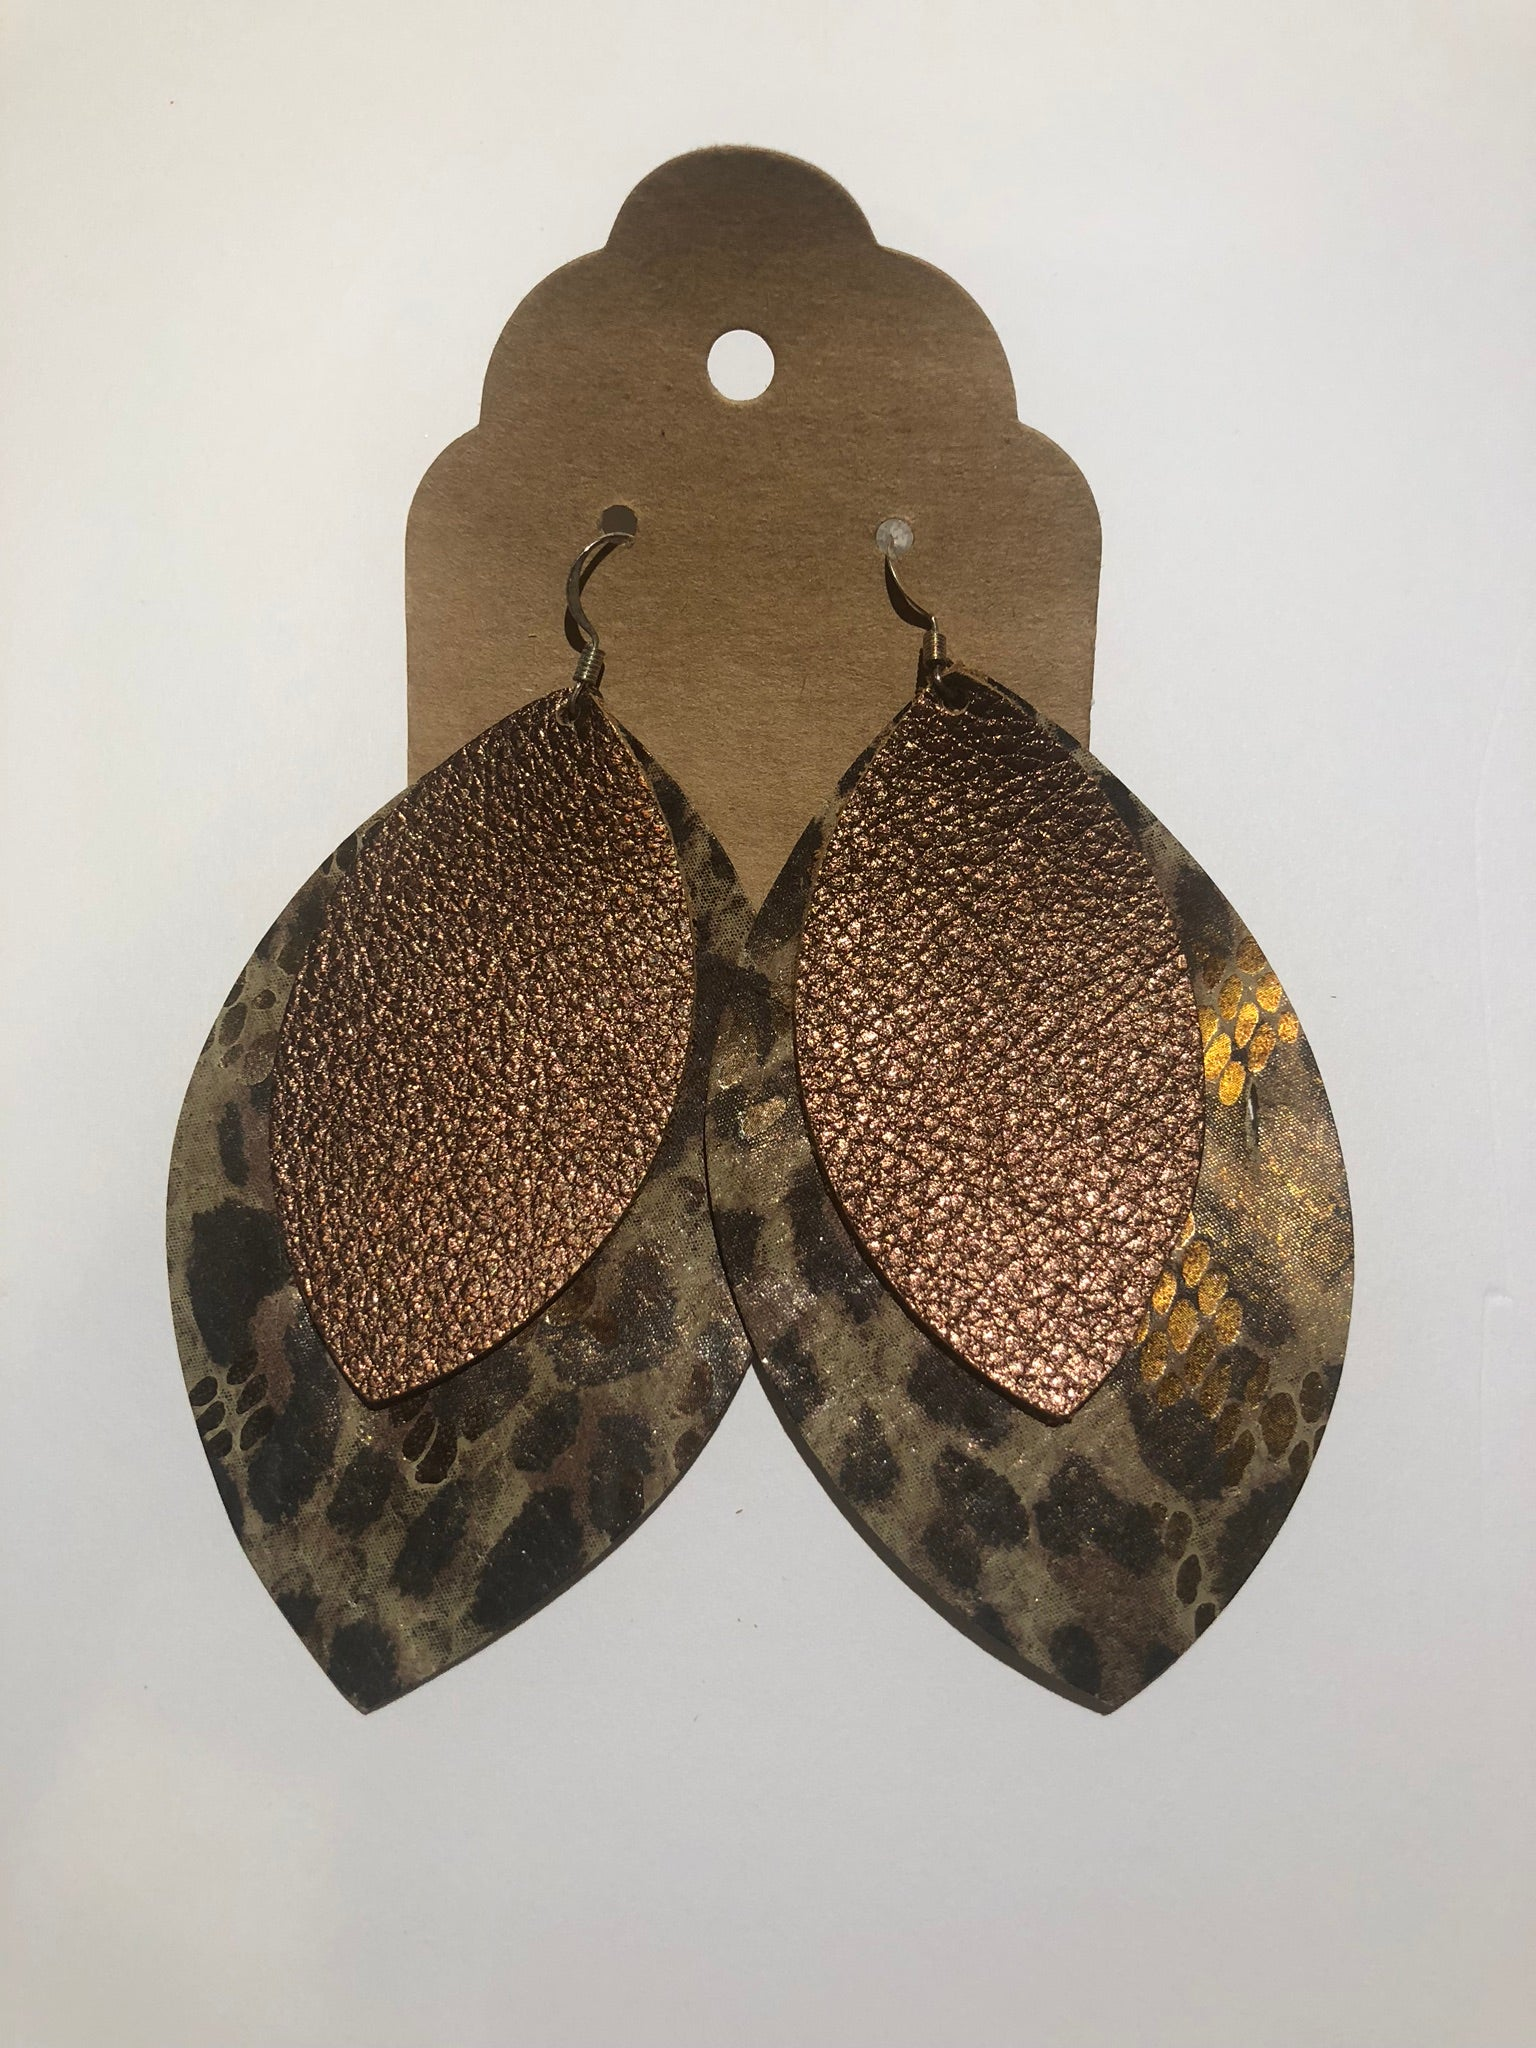 Image of Leather Earrings - Double Leaf Cheetah Print and Brown Metallic